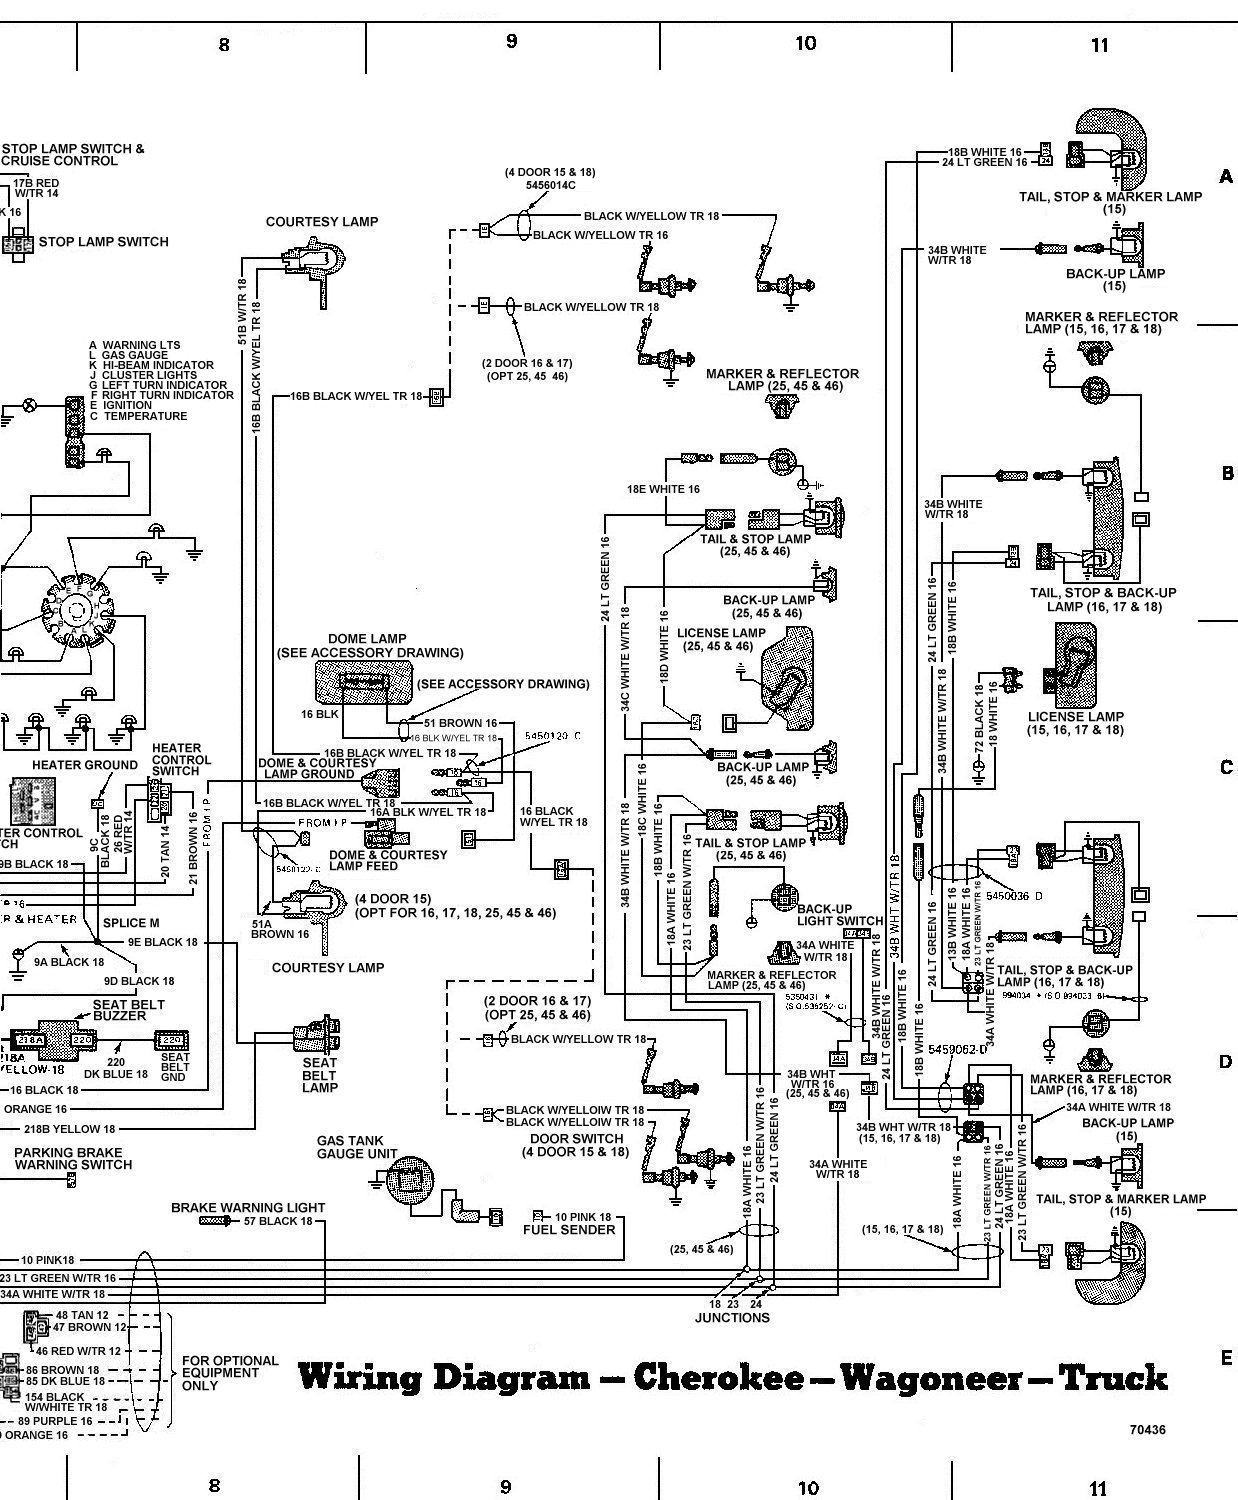 tom 'oljeep' collins fsj wiring page jeep grand cherokee wiring diagram 2004 Cherokee Wiring Diagram #7